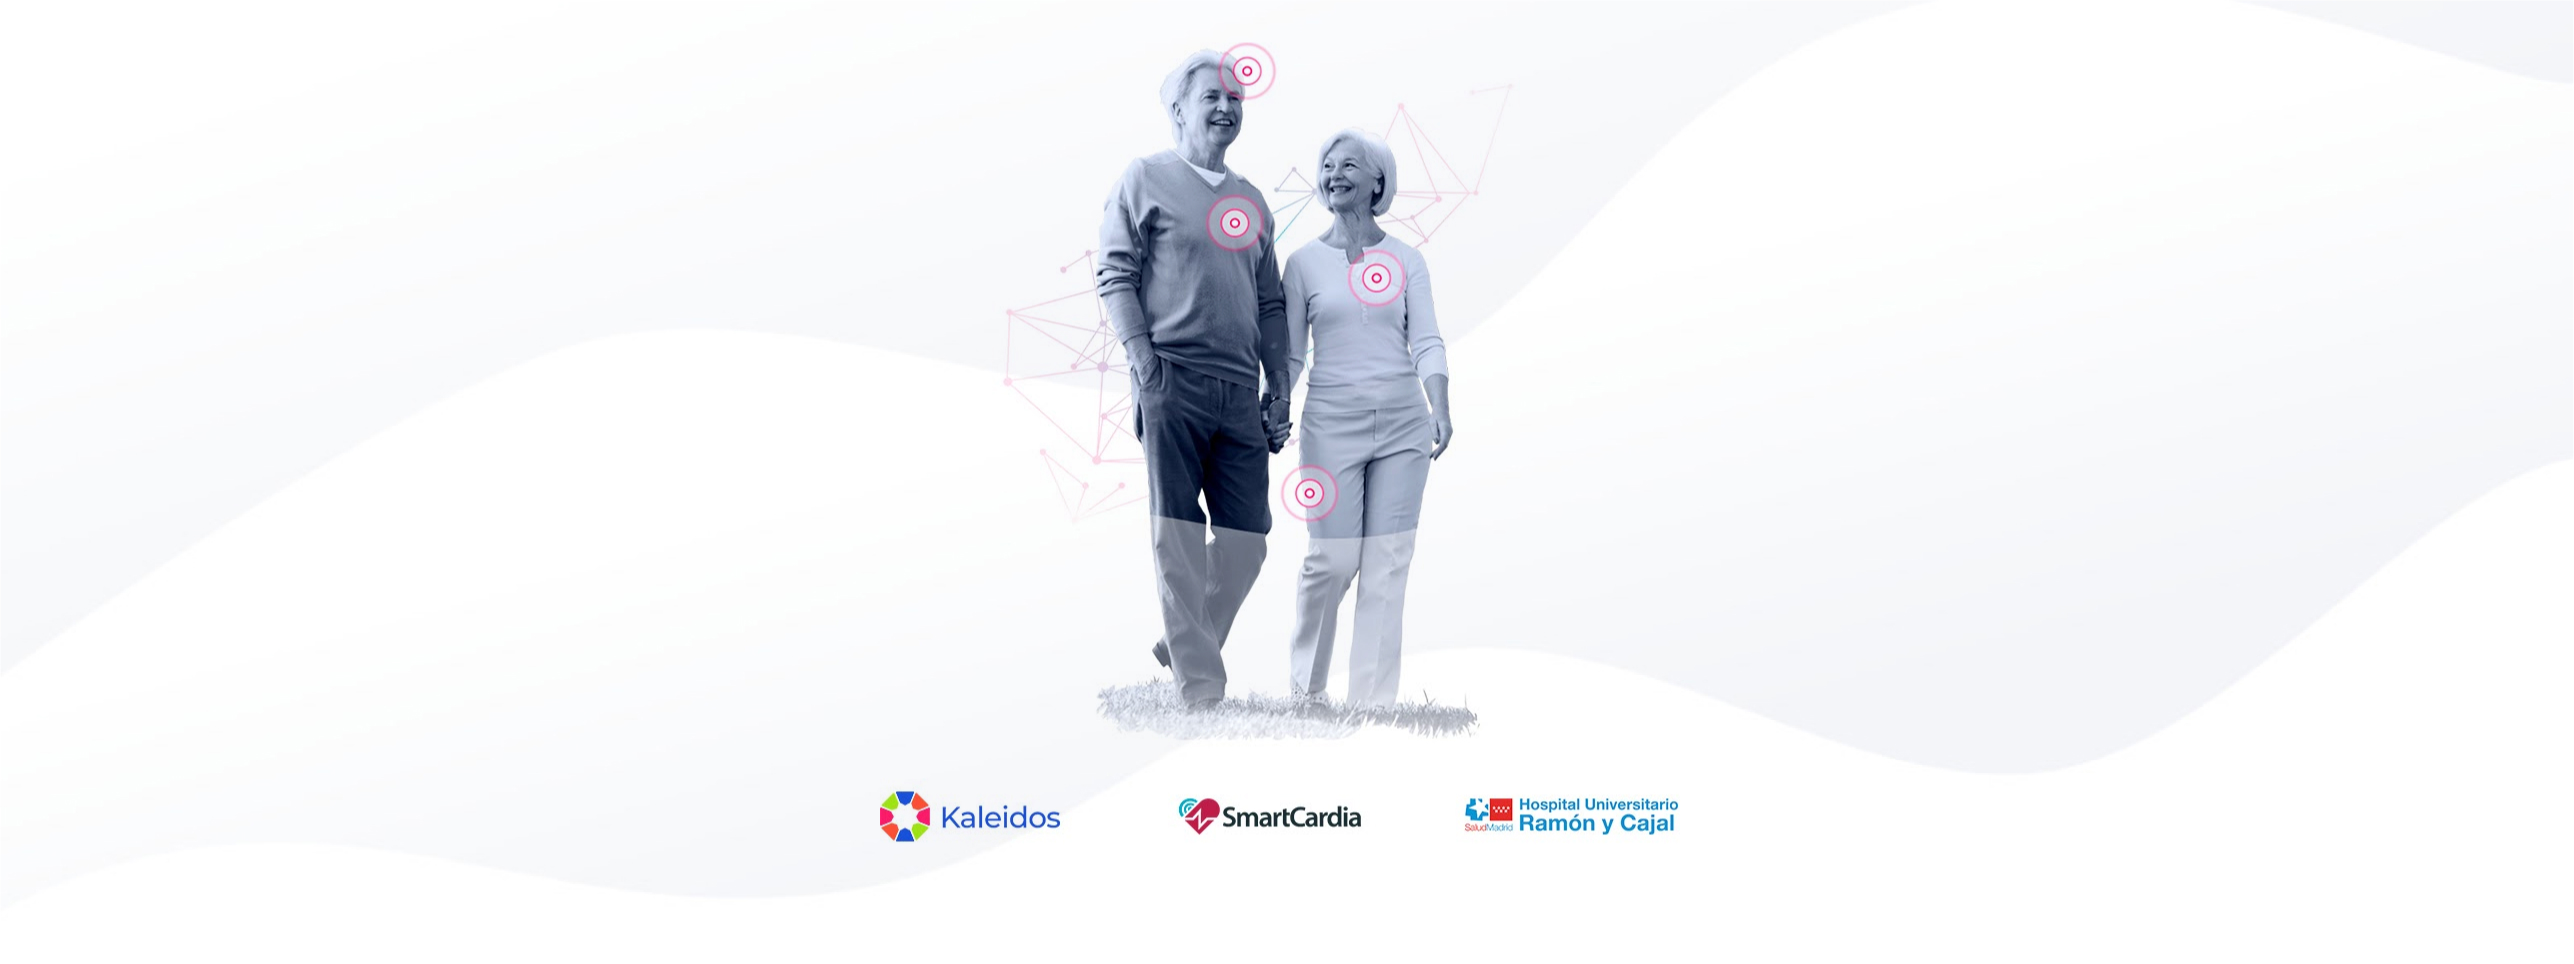 promotional image with two elder people and logos of kaleidos, smartcadia and Ramon y Cajal Hospital